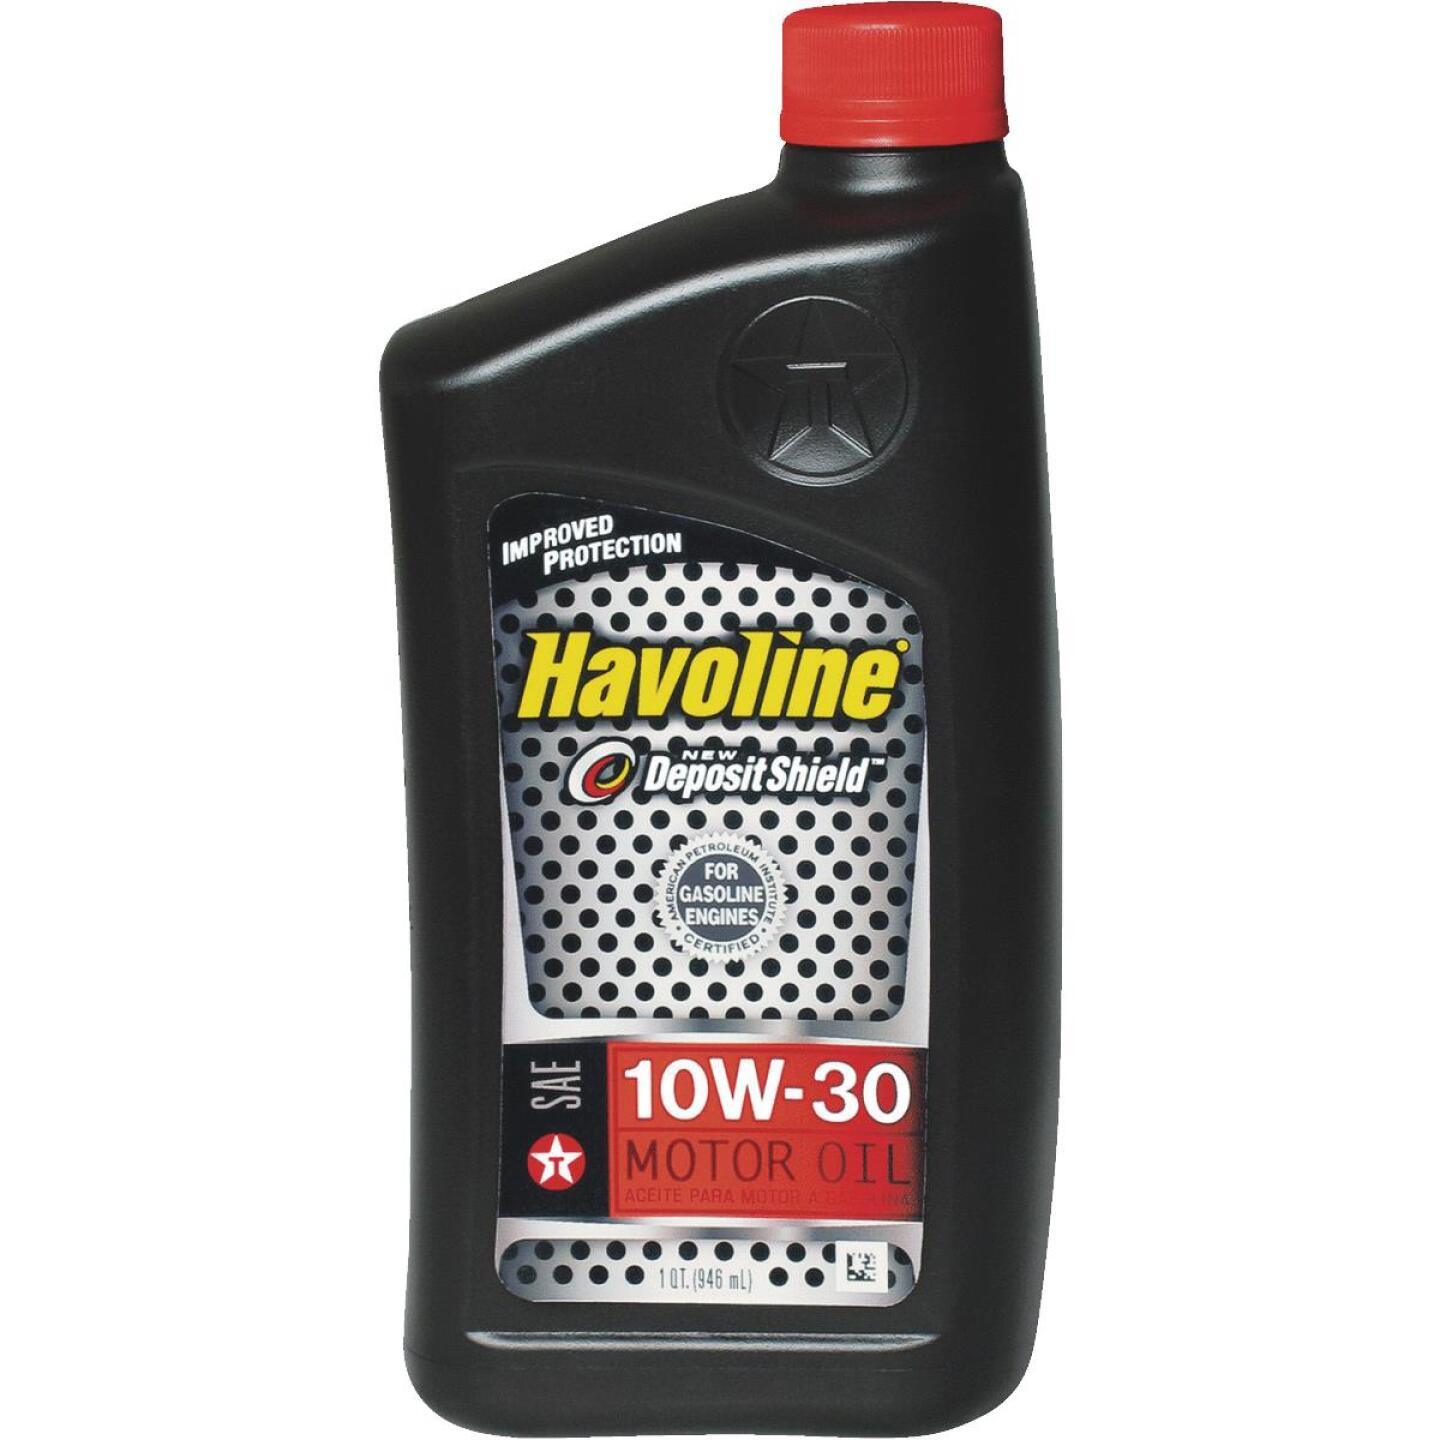 Havoline 10W30 Quart Motor Oil Image 1